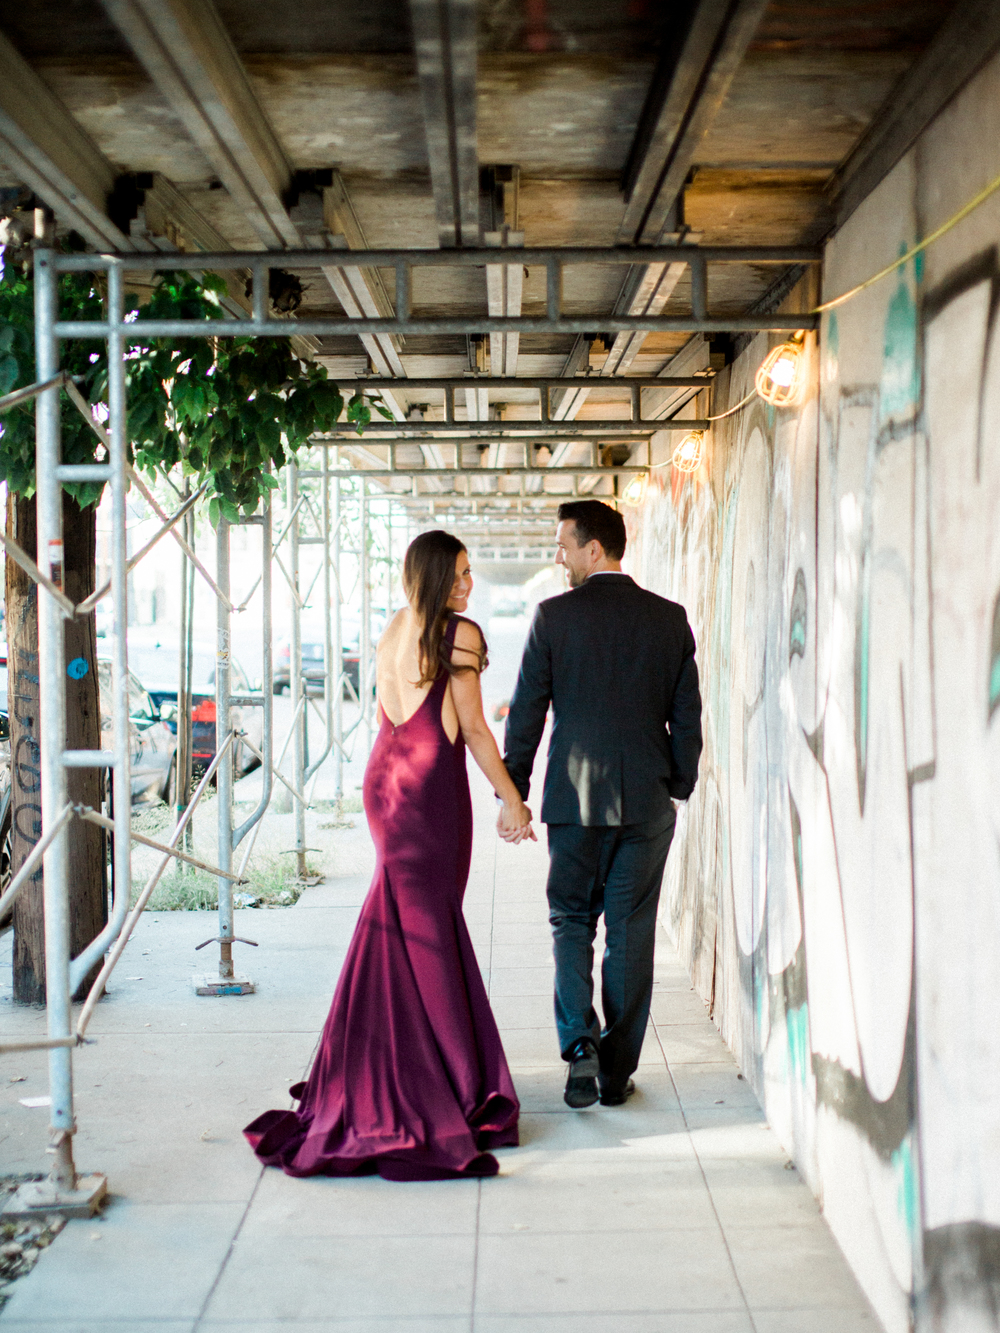 downtown_losangeles_engagement_photos_chantepaul-59.jpg